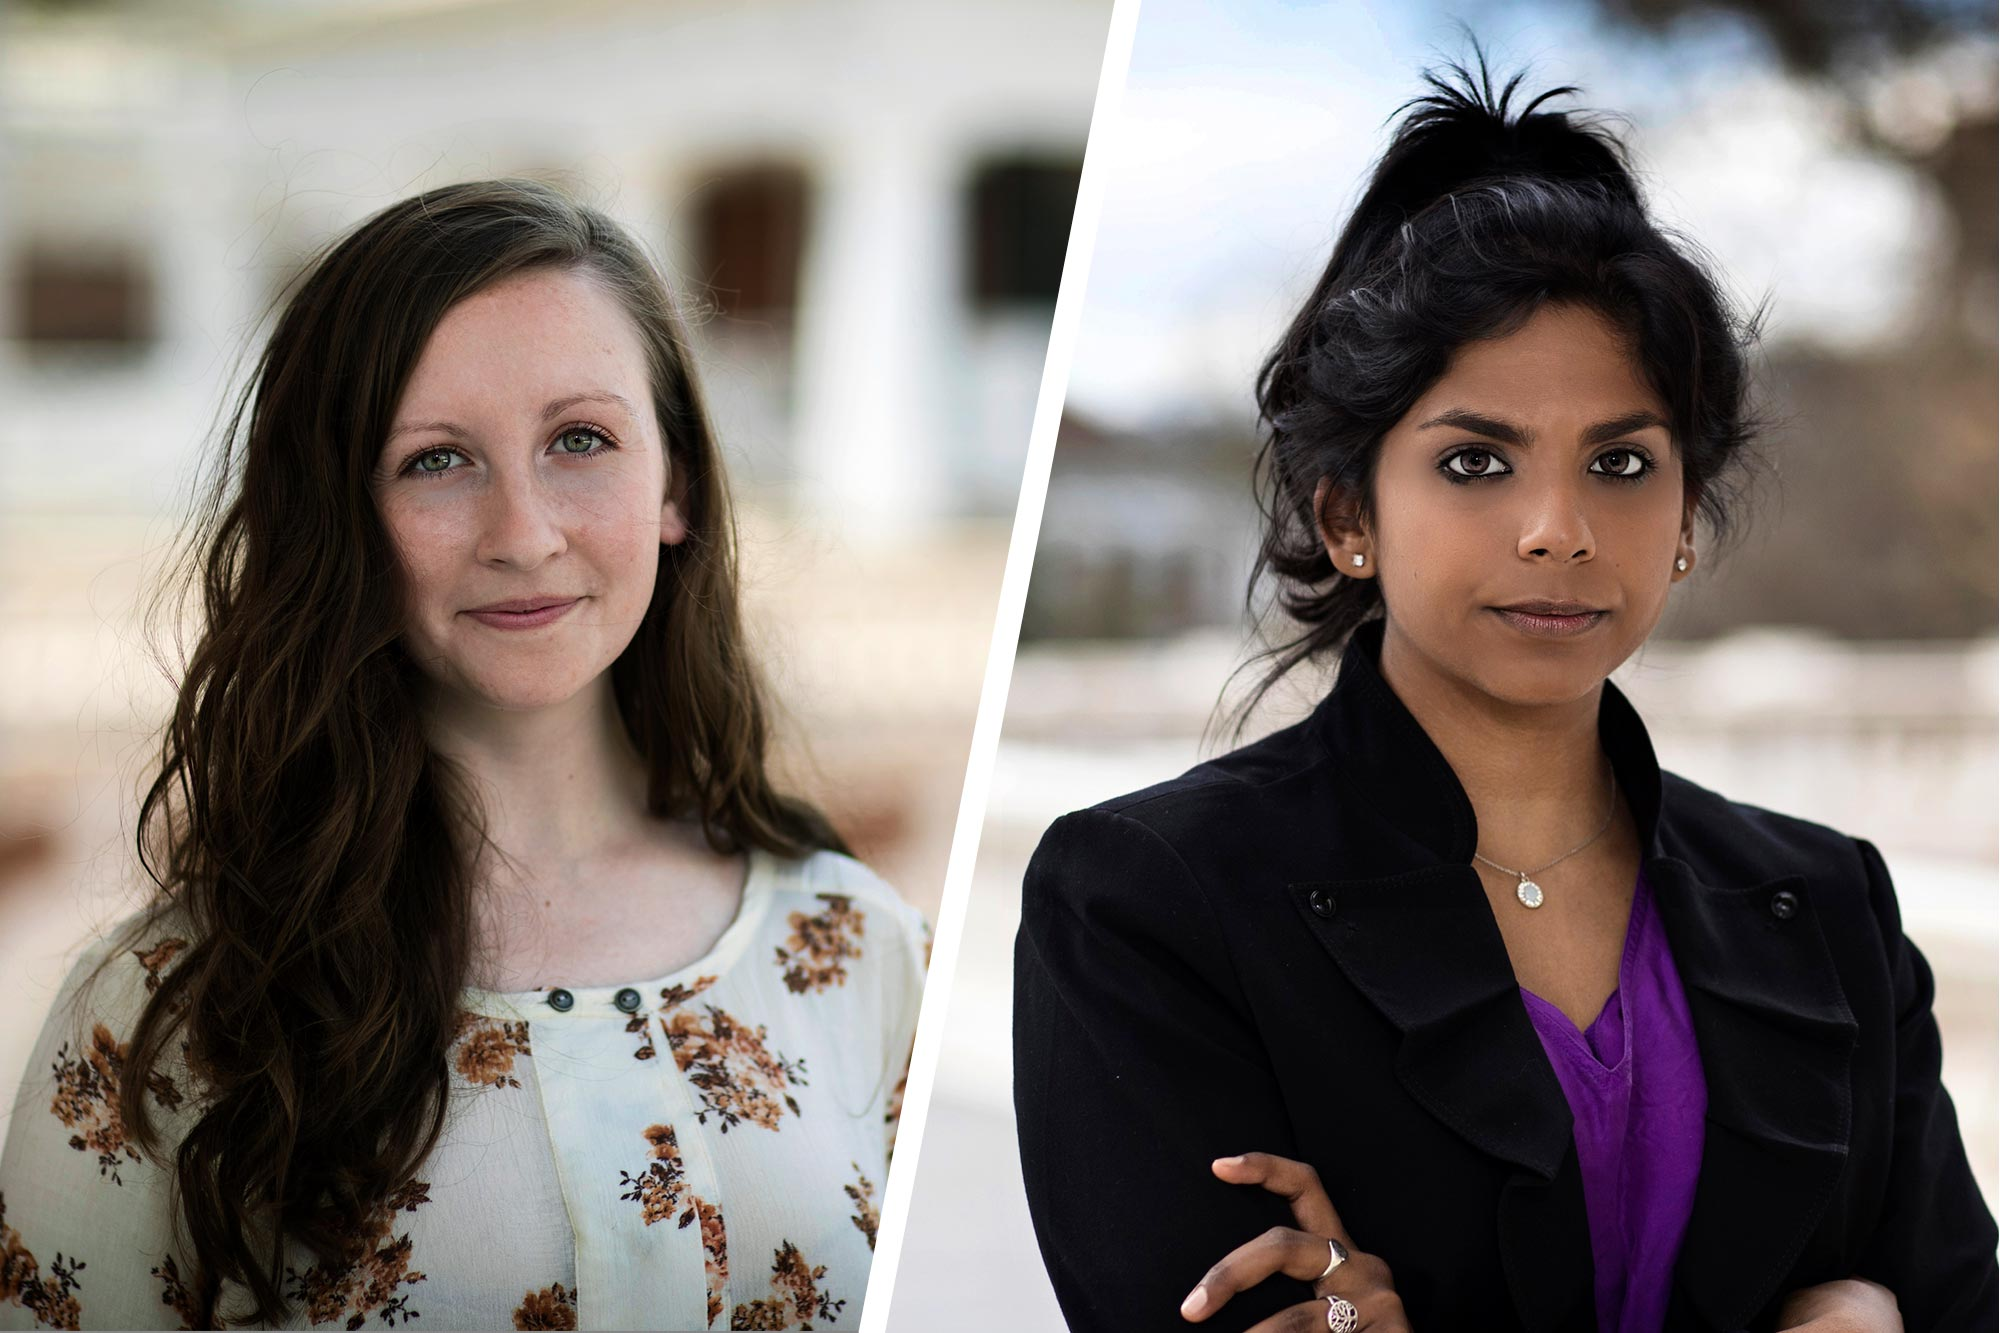 Ashley Ferguson will study at the Medical Research Council Cancer Unit of the University of Cambridge and Sasheenie Moodley will pursue a Ph.D. in African studies, at the University of Oxford.